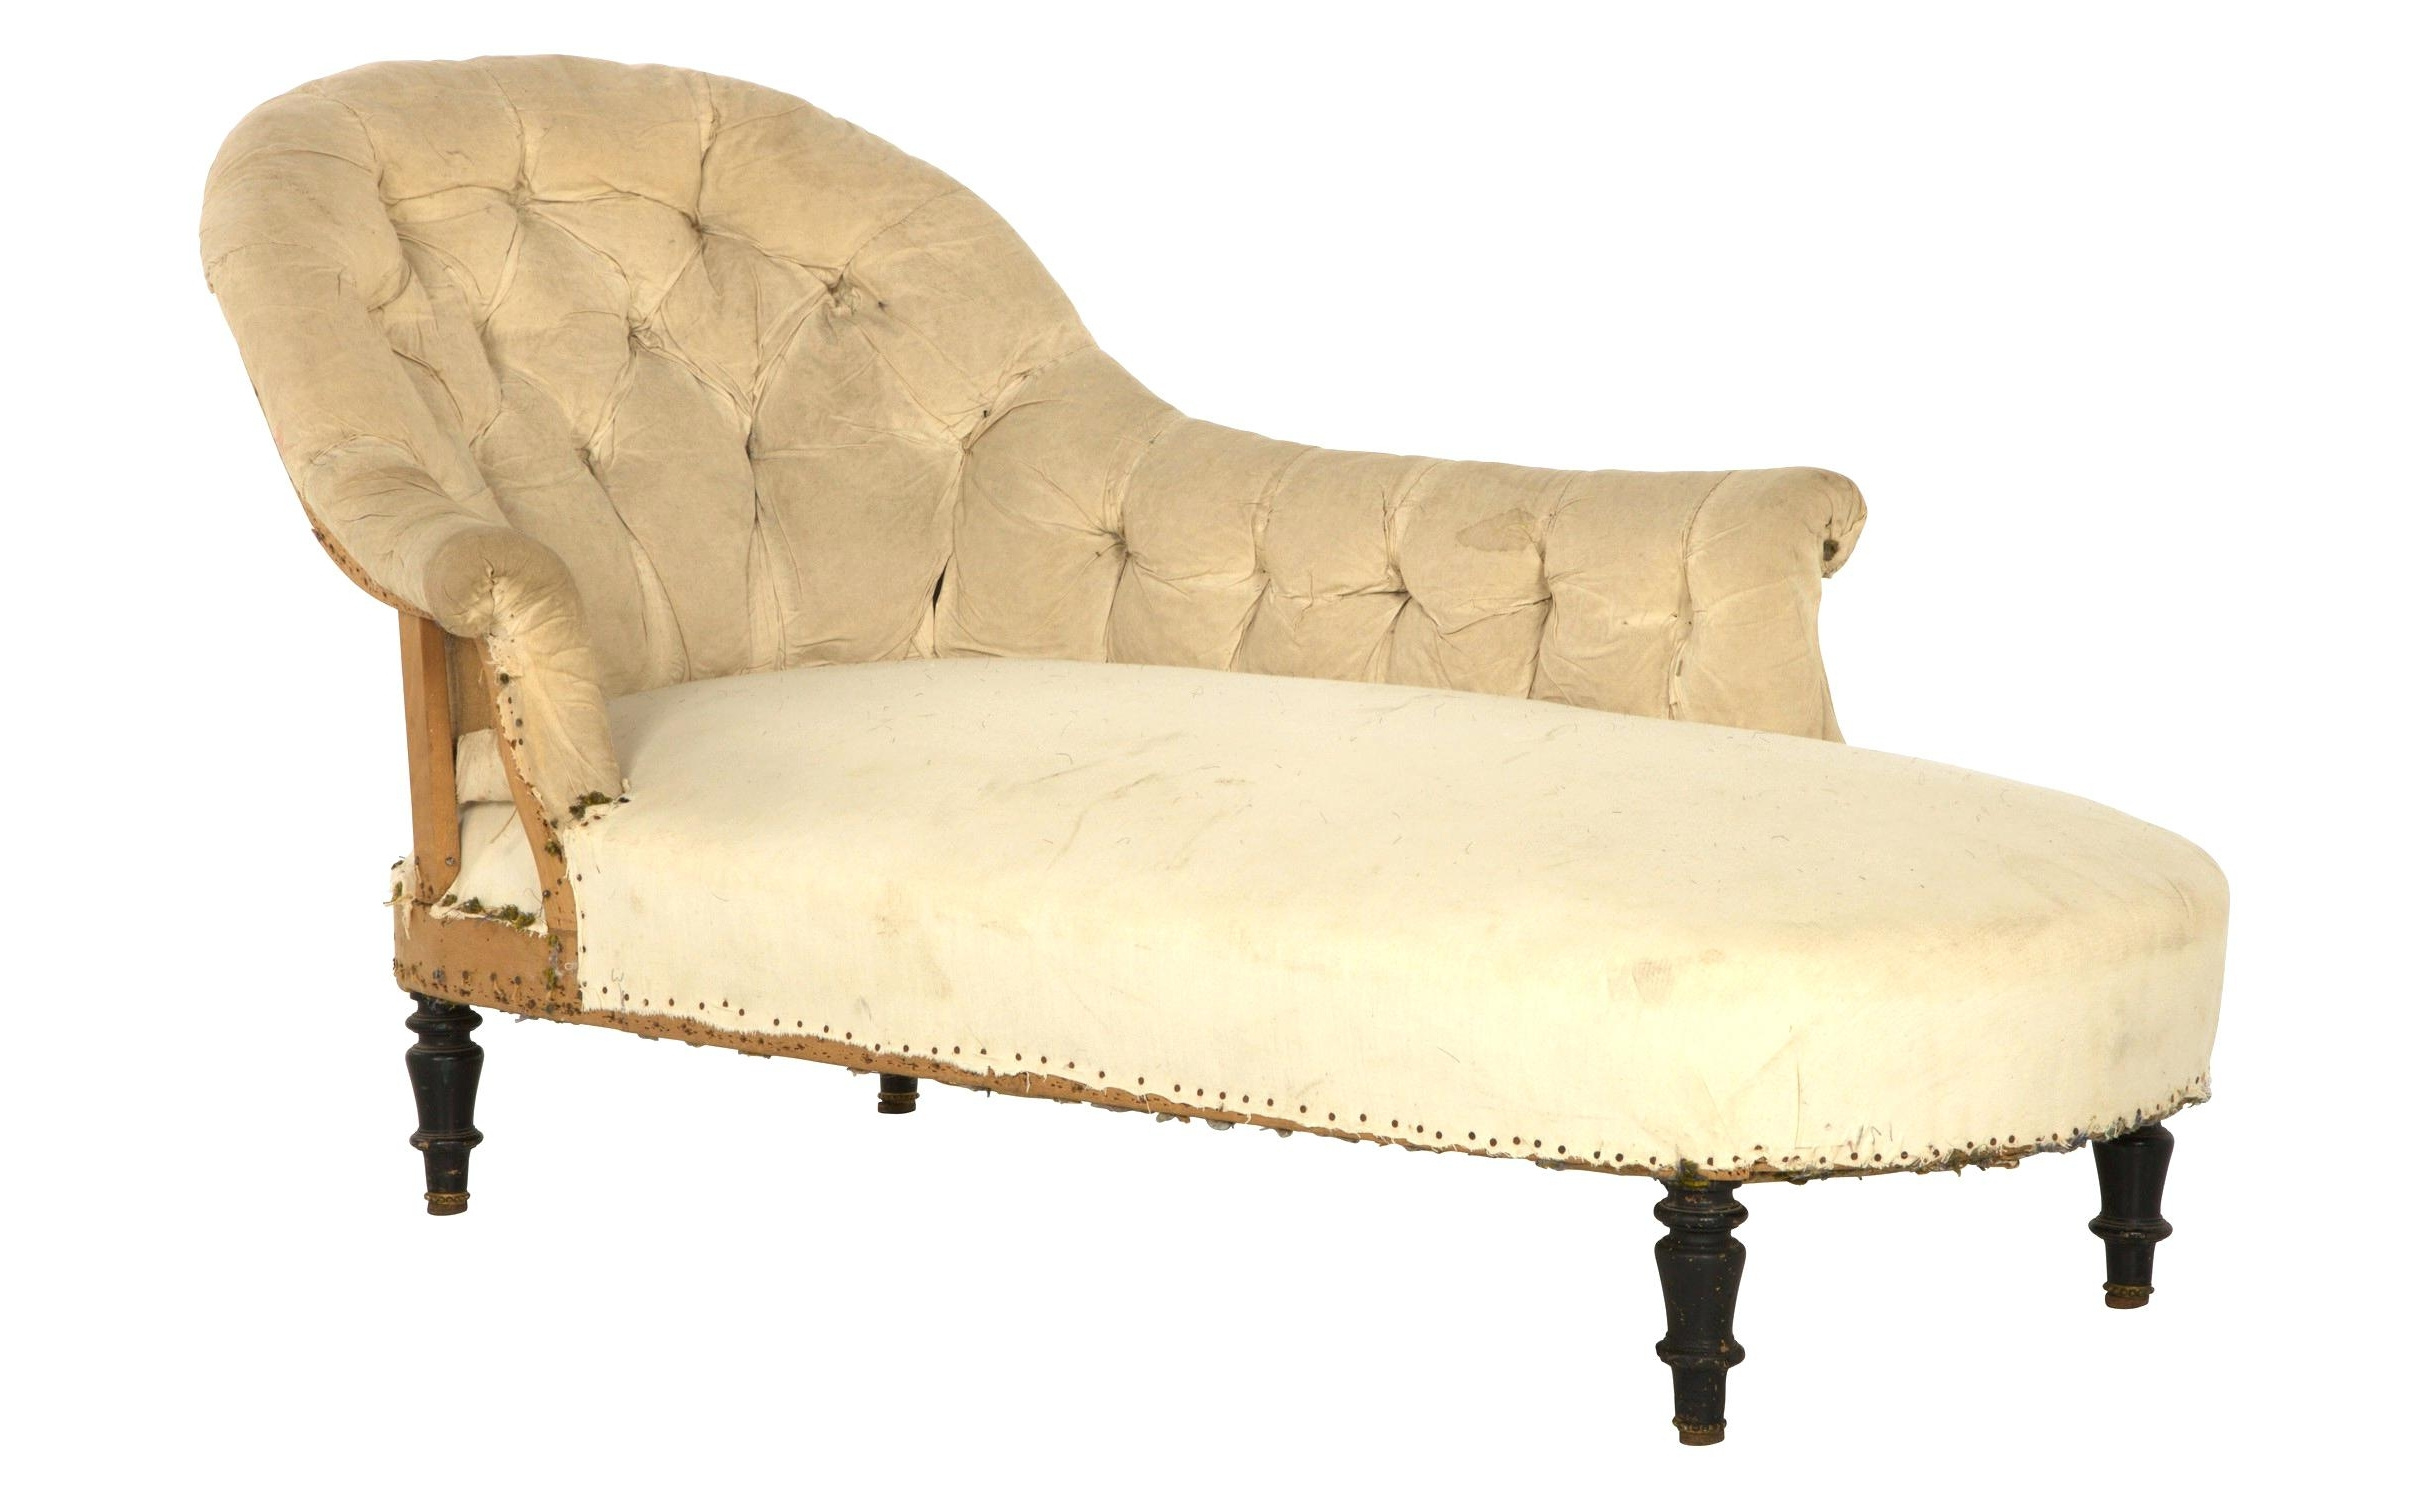 Antique Chaise Lounge Chairs For Well Known Vintage Chaise Lounge Chairs • Lounge Chairs Ideas (View 7 of 15)